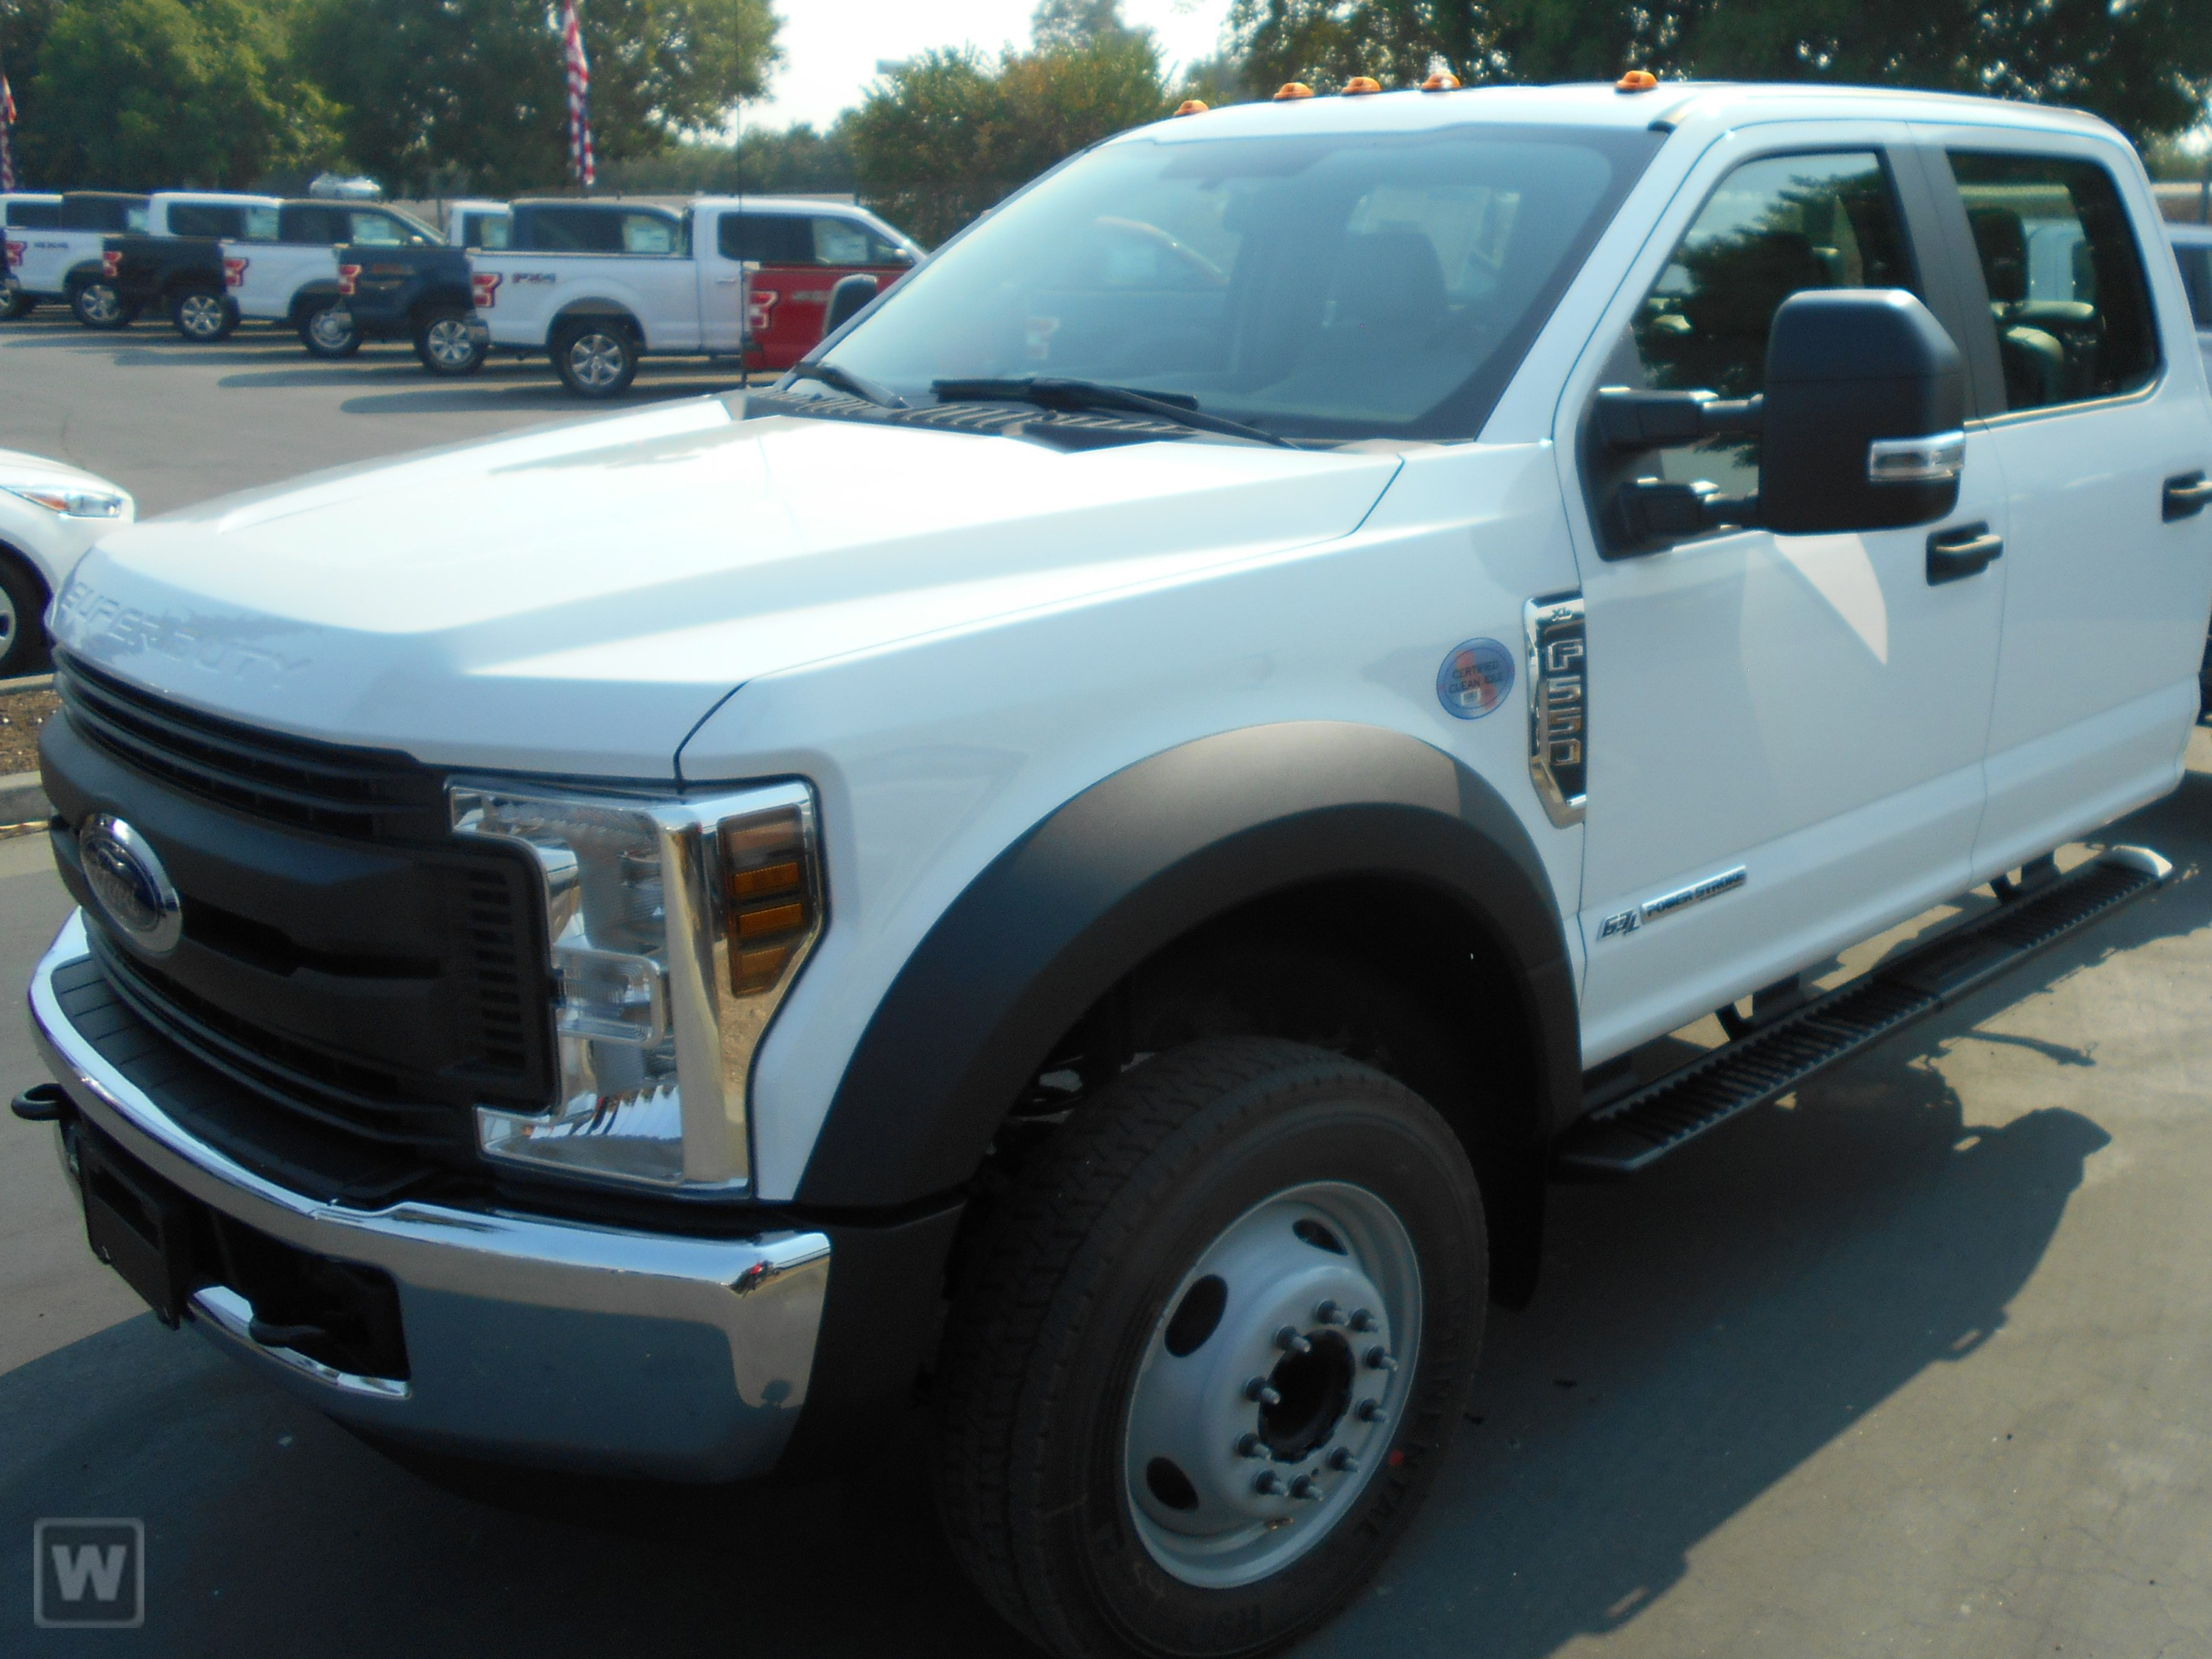 2019 F-550 Crew Cab DRW 4x4, Cab Chassis #4282 - photo 1